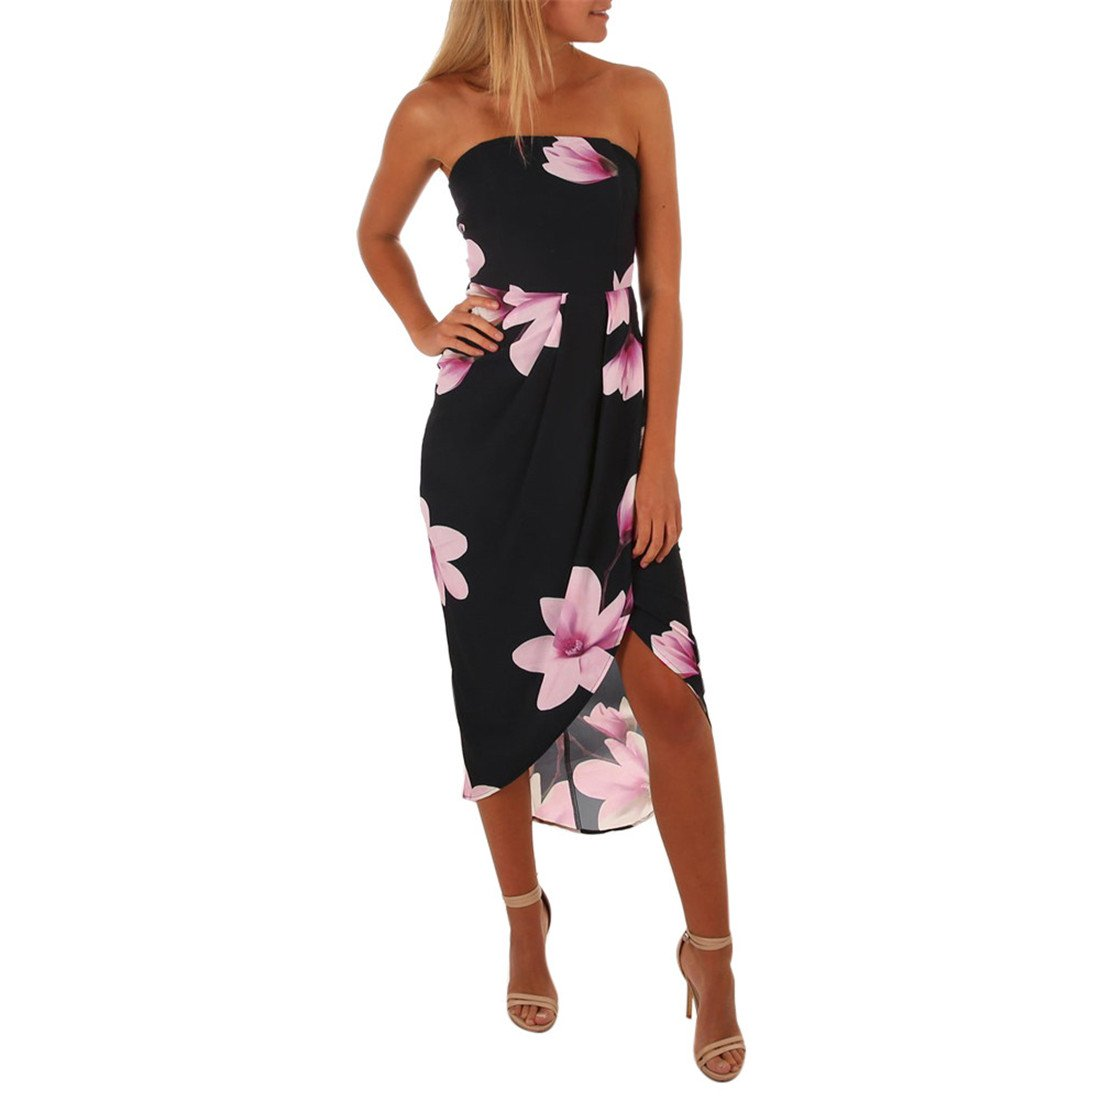 Womens Dresses,Moonuy,Womens Dresses Party,Girl Floral Off The Shoulder Boho Sexy Clubwear Loose Jumpsuit Beach Evening Party Dress For Ladies Fashion ...